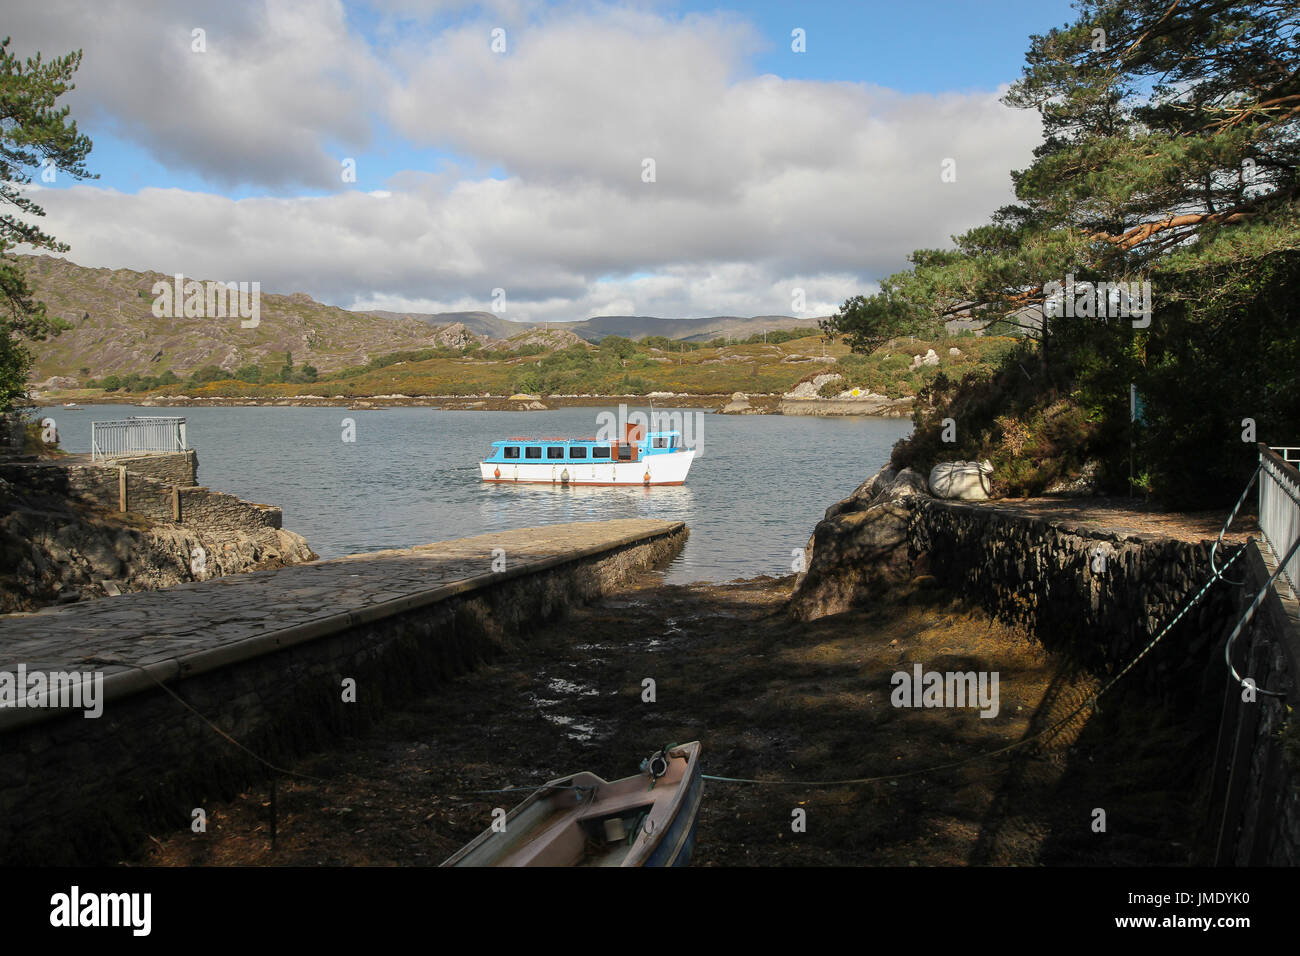 Passenger ferry leaving Garnish Island in Bantry Bay, West Cork, Ireland. - Stock Image